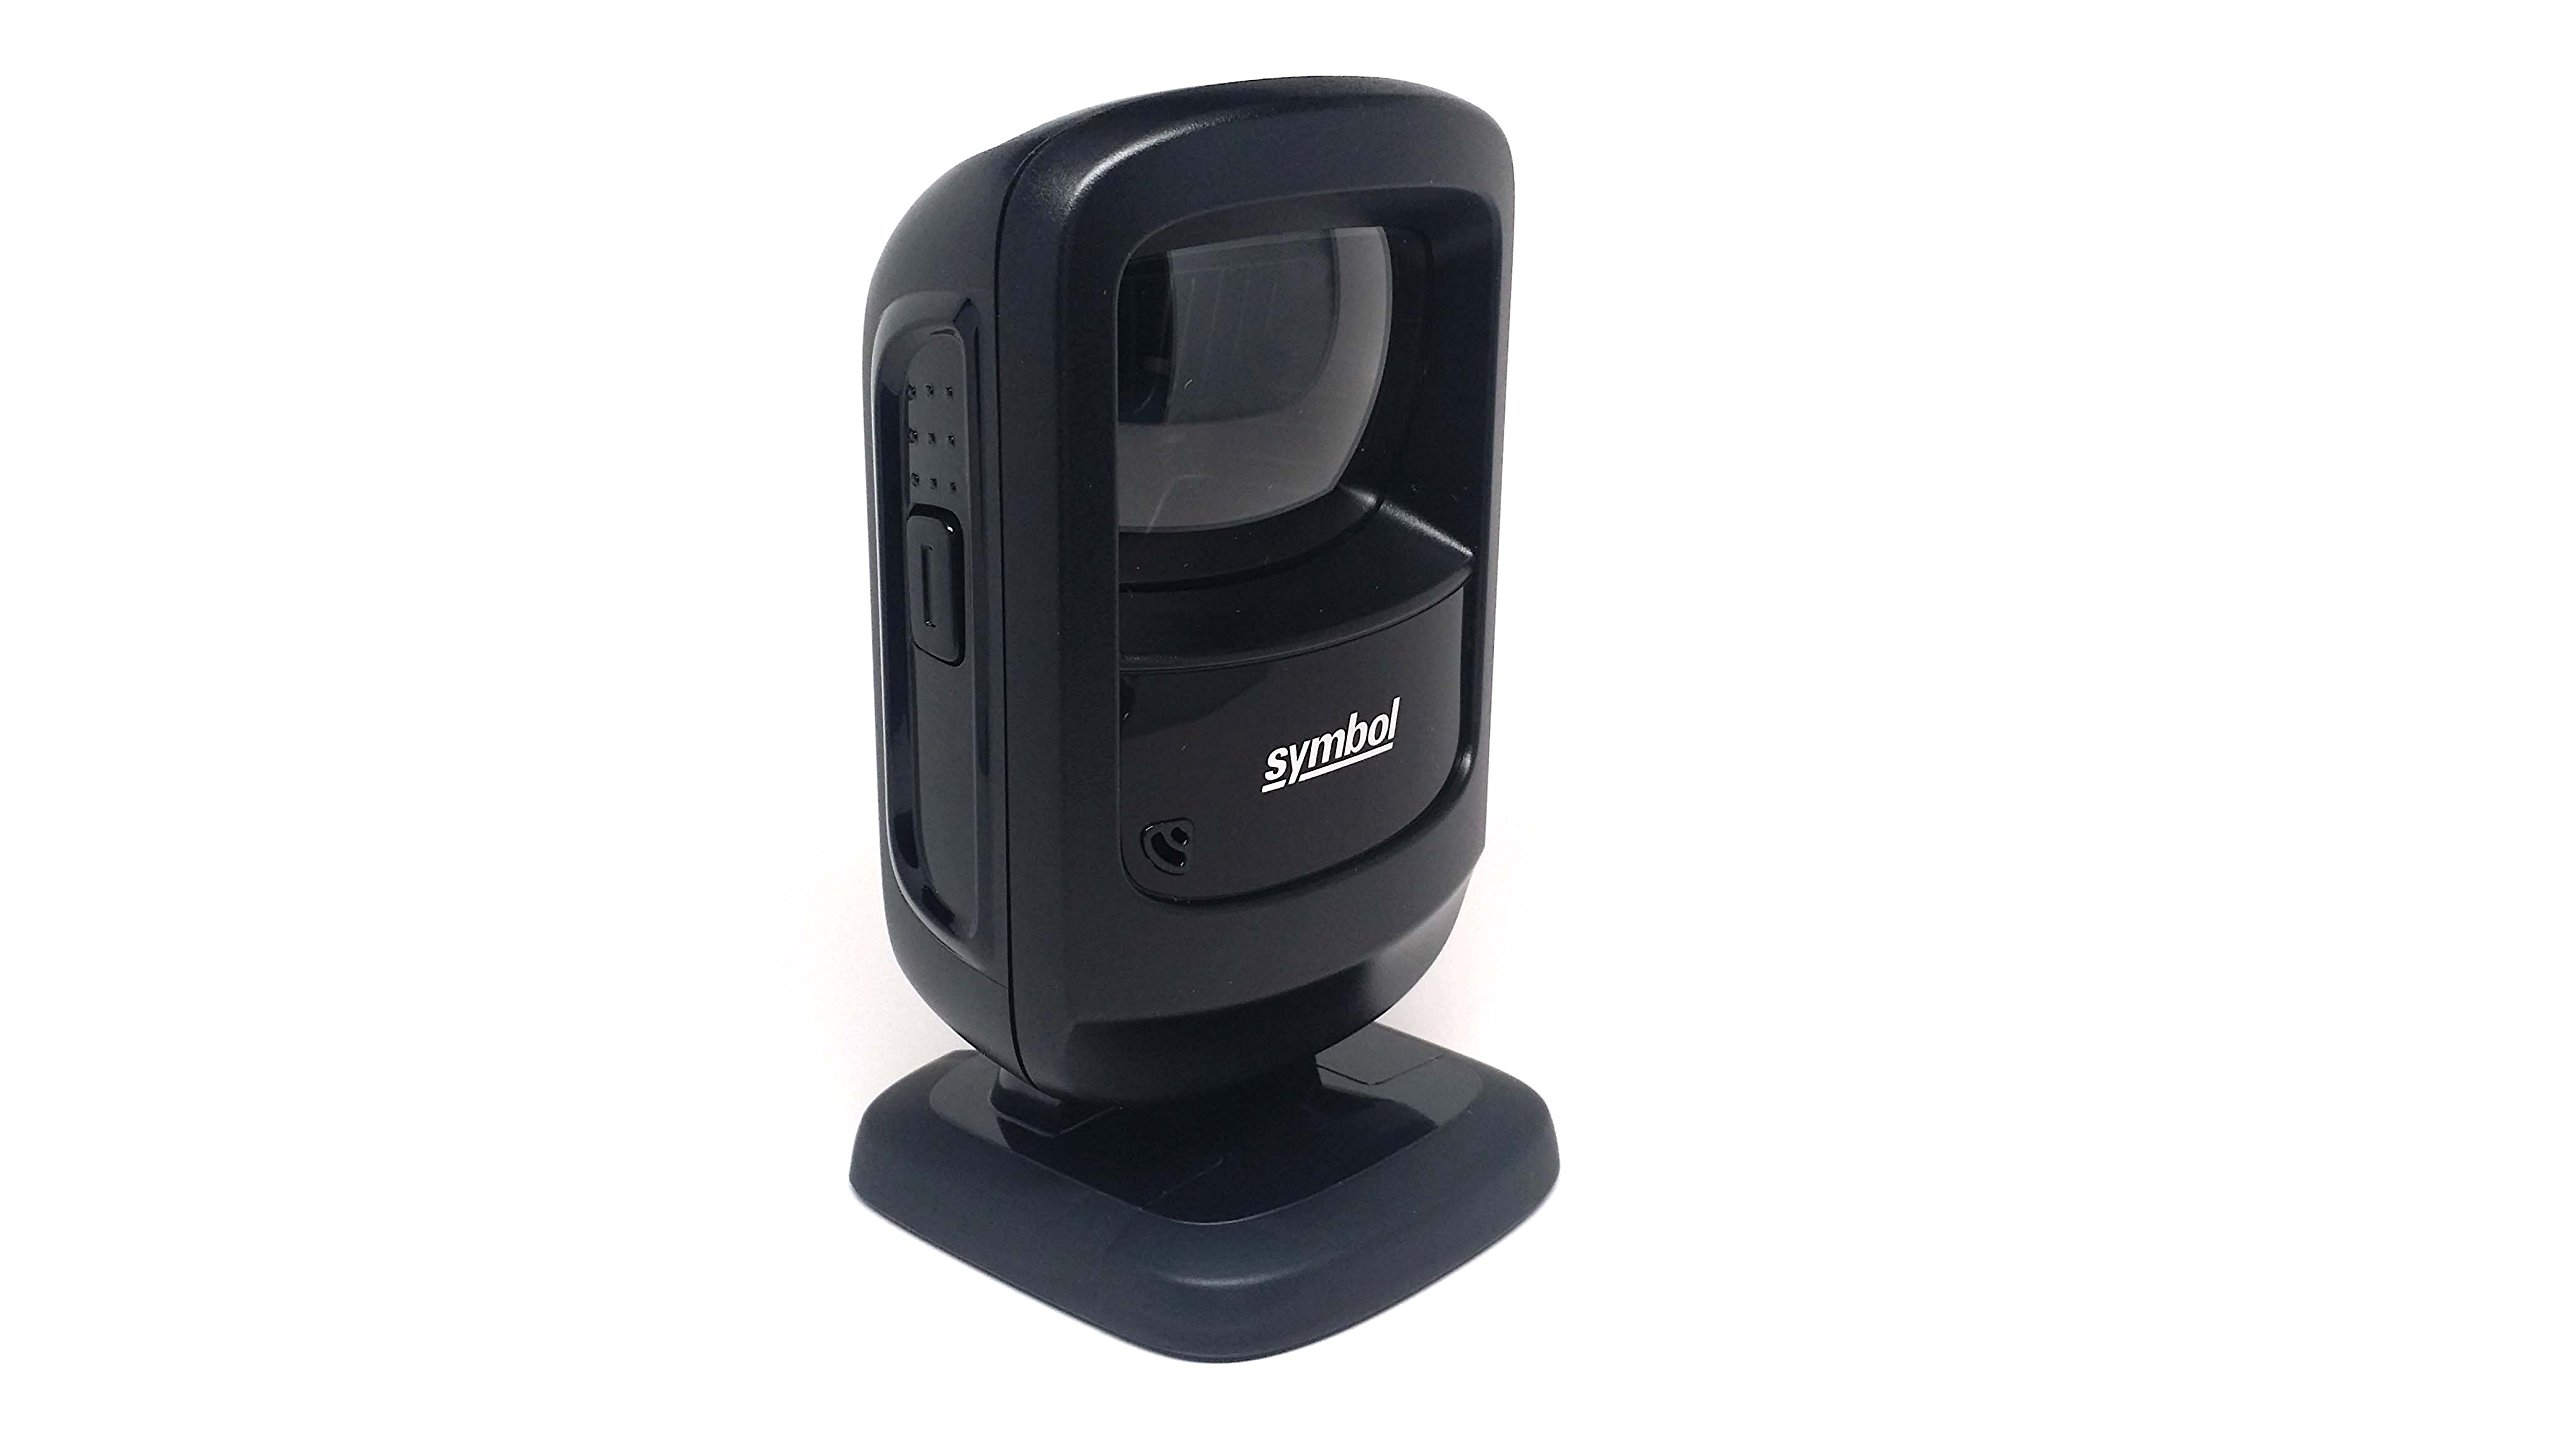 Zebra (Formerly Motorola Symbol) DS9208 Digital Hands-Free Barcode Scanner (1D and 2D) with USB Cable